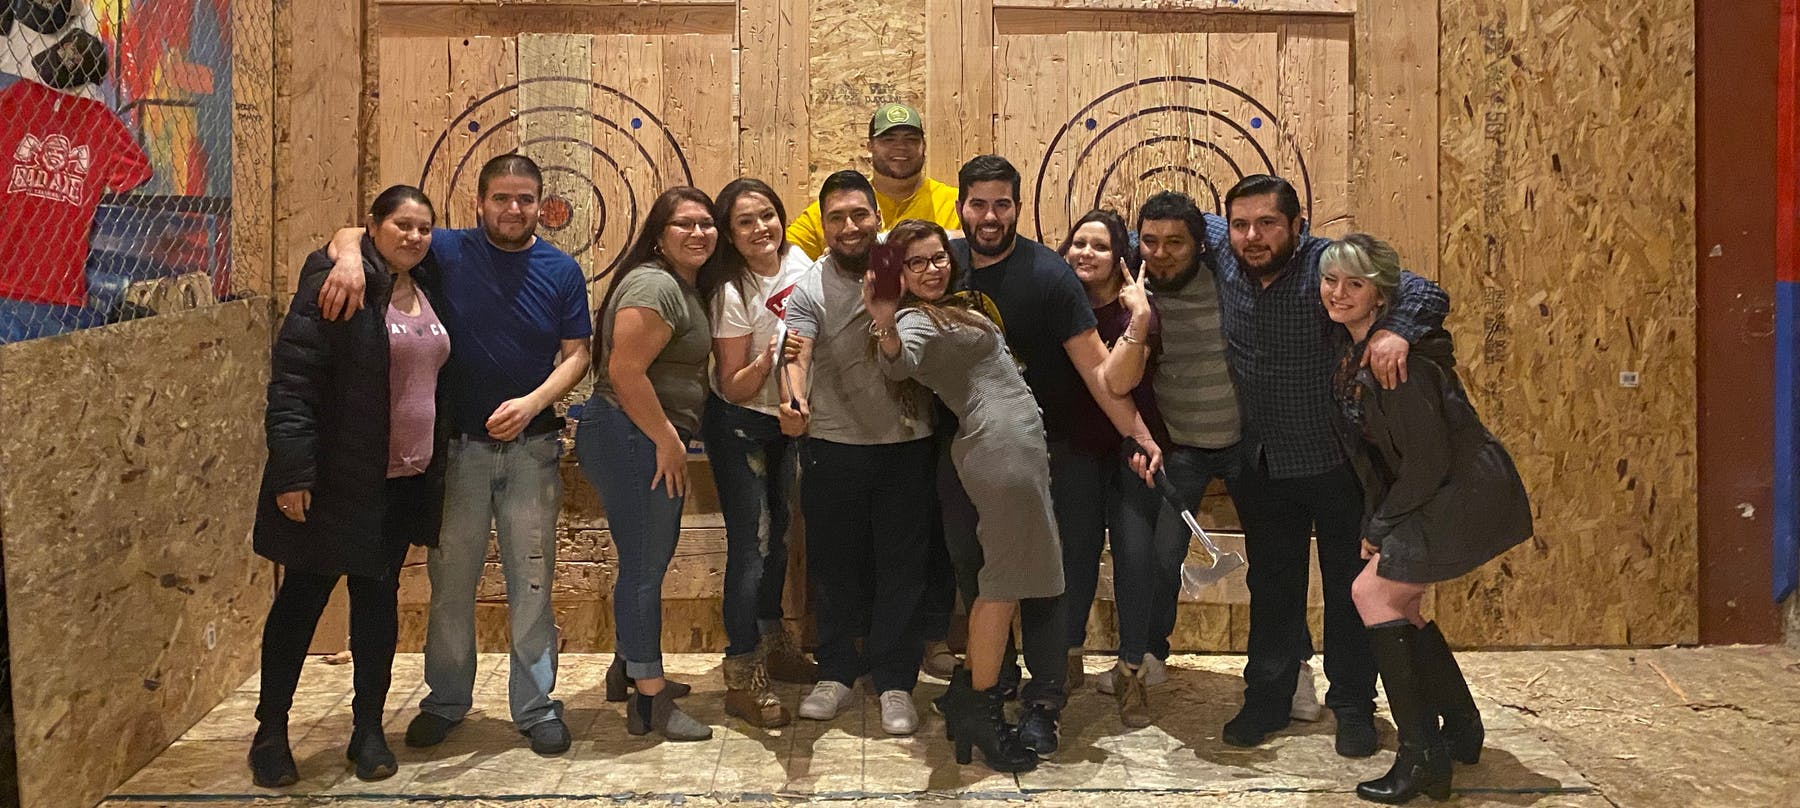 a group of people posing for a picture